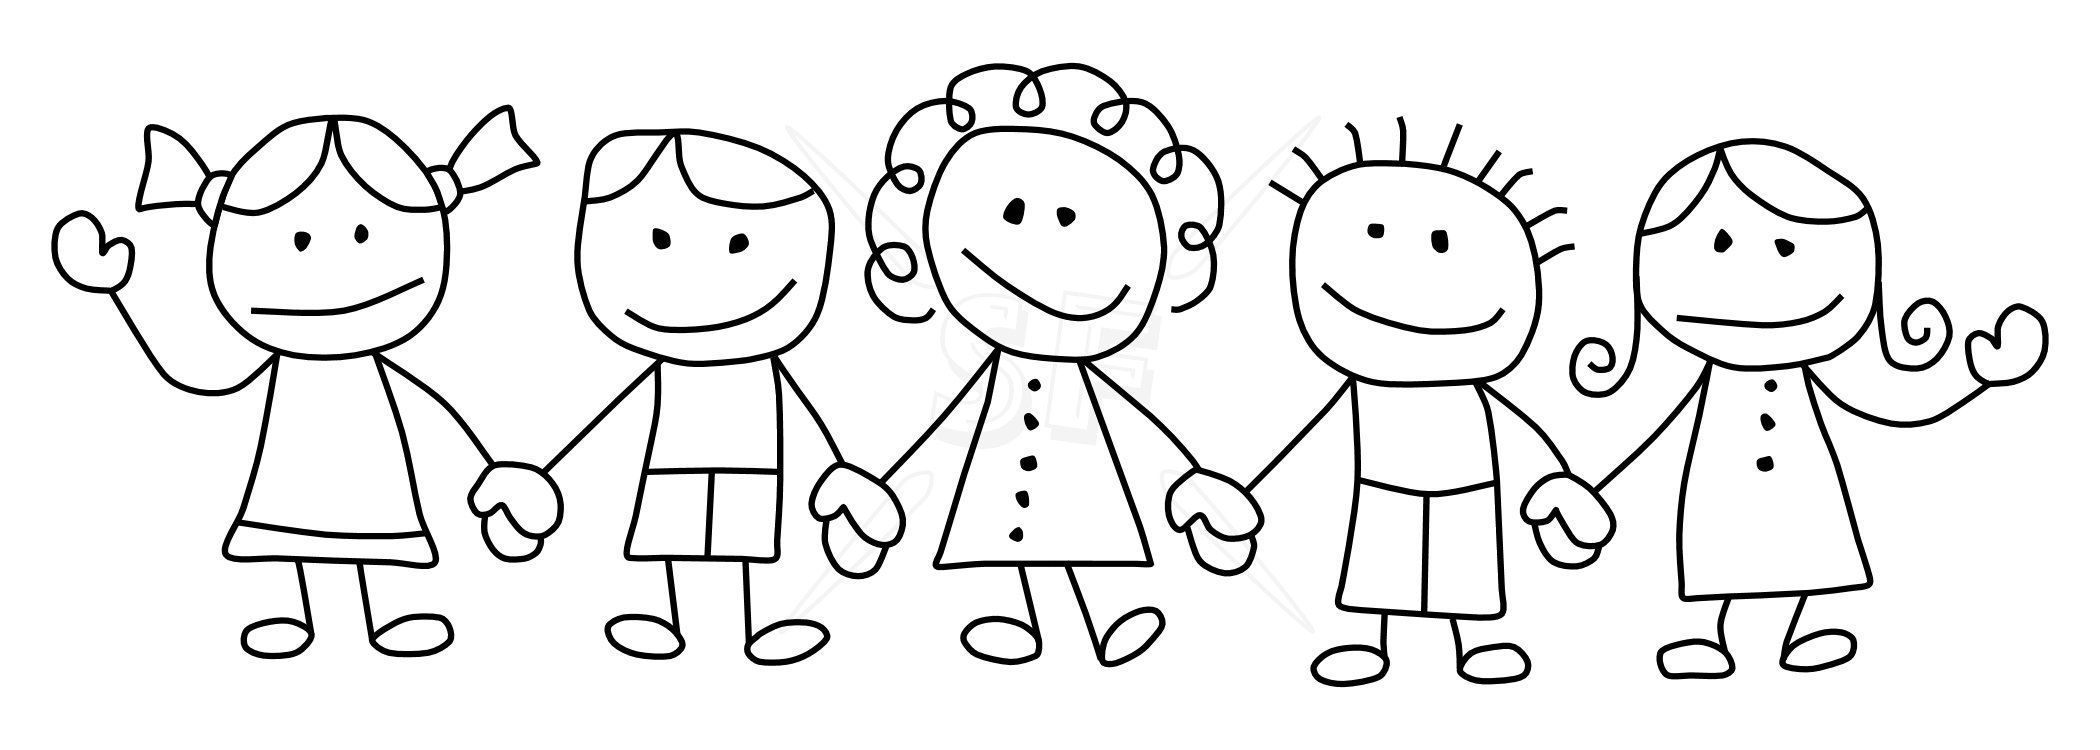 Clipart stick children image freeuse stock Pin by Tatyana Stomaty on coloring2 | Stick figures, Clip art, Clip ... image freeuse stock